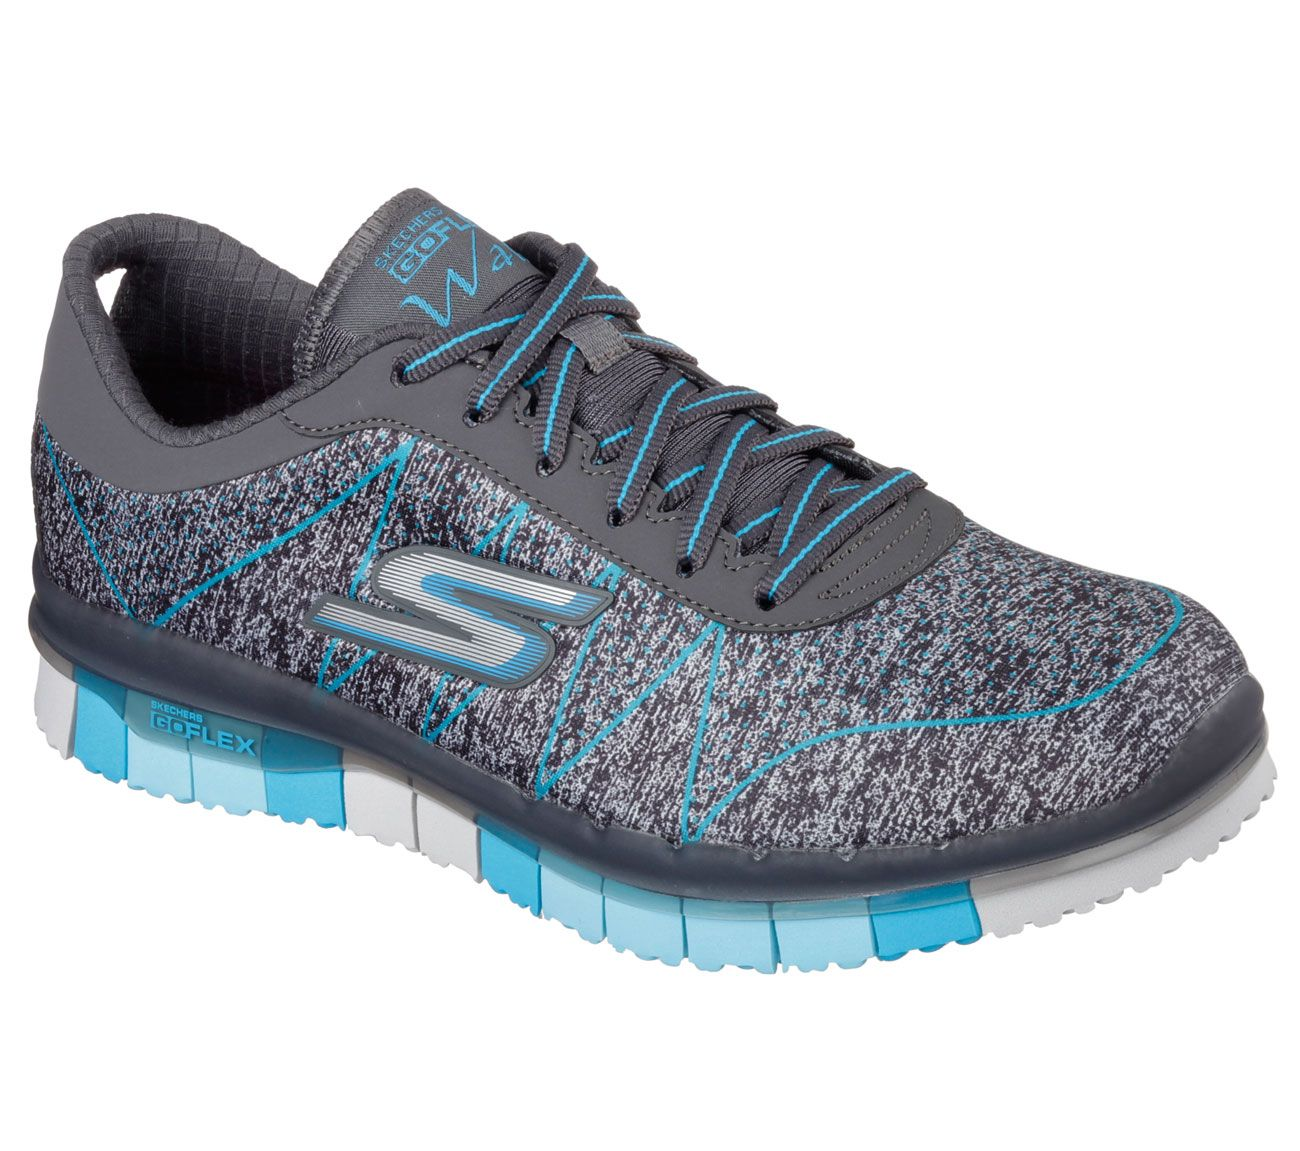 Skechers Go Flex - Ability Women FD94522